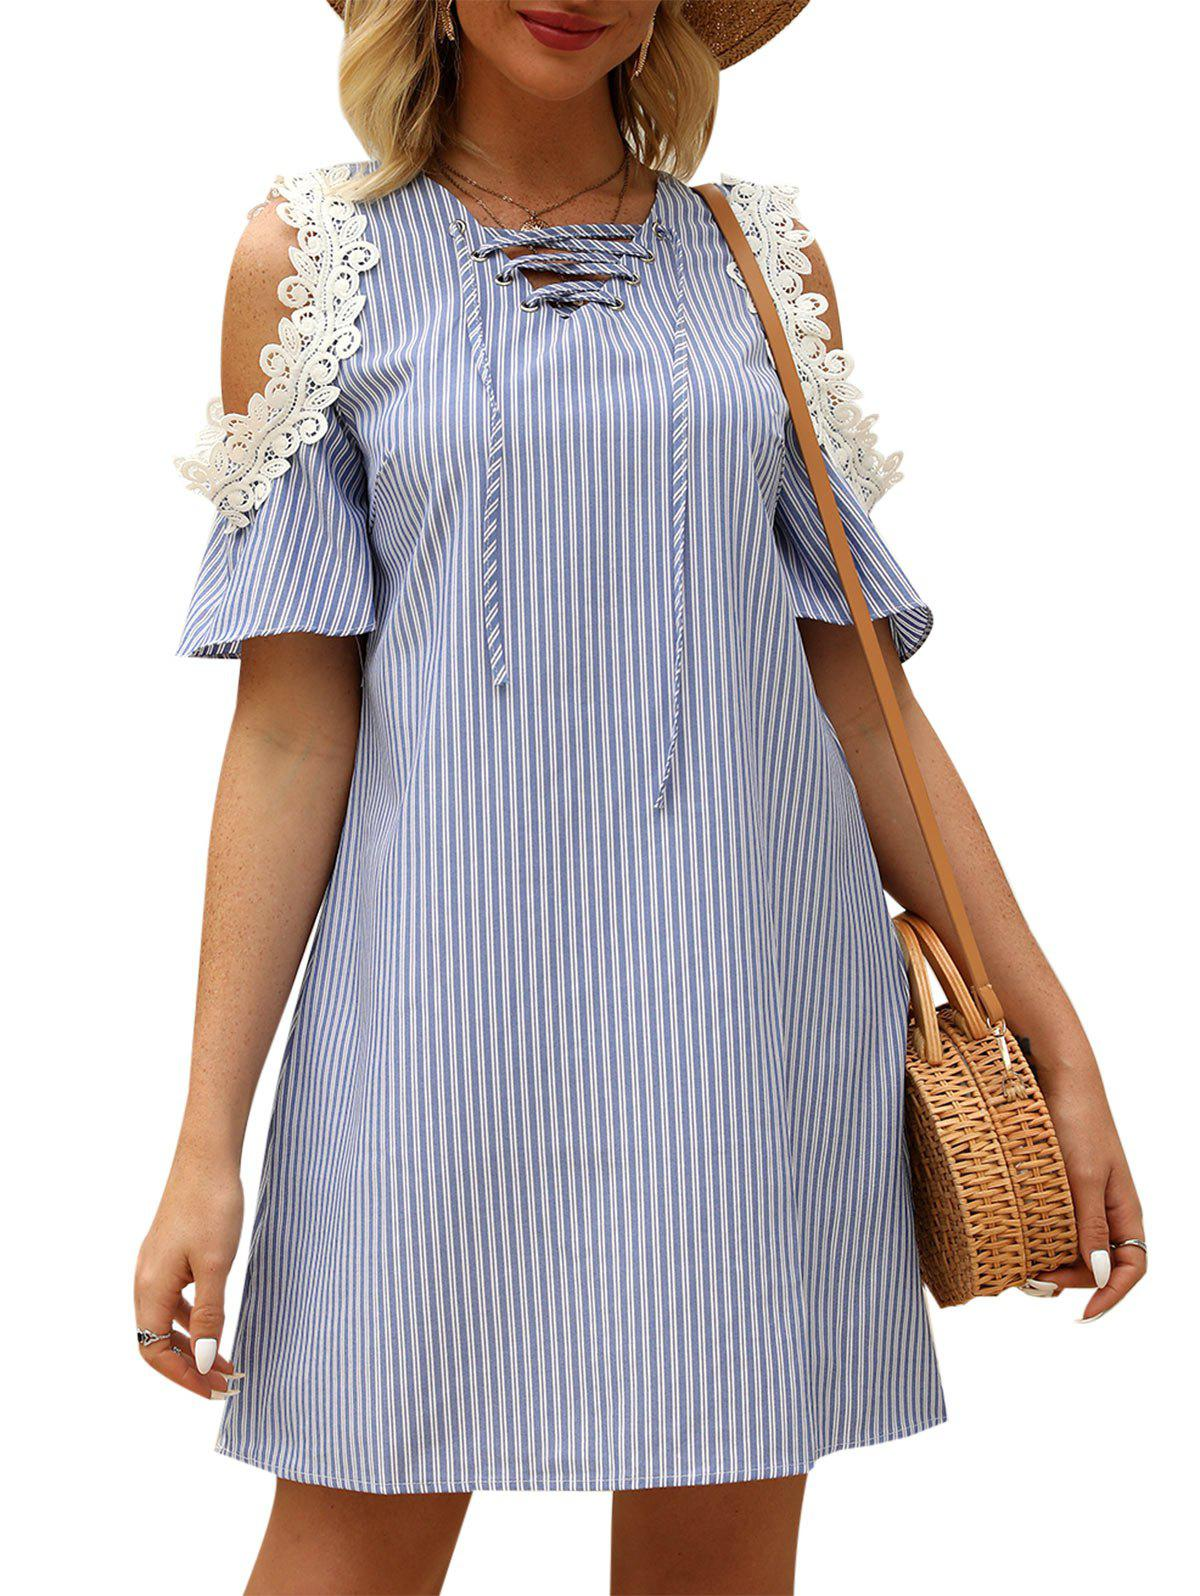 Striped Print Lace-up Cold Shoulder Dress - BLUE GRAY M